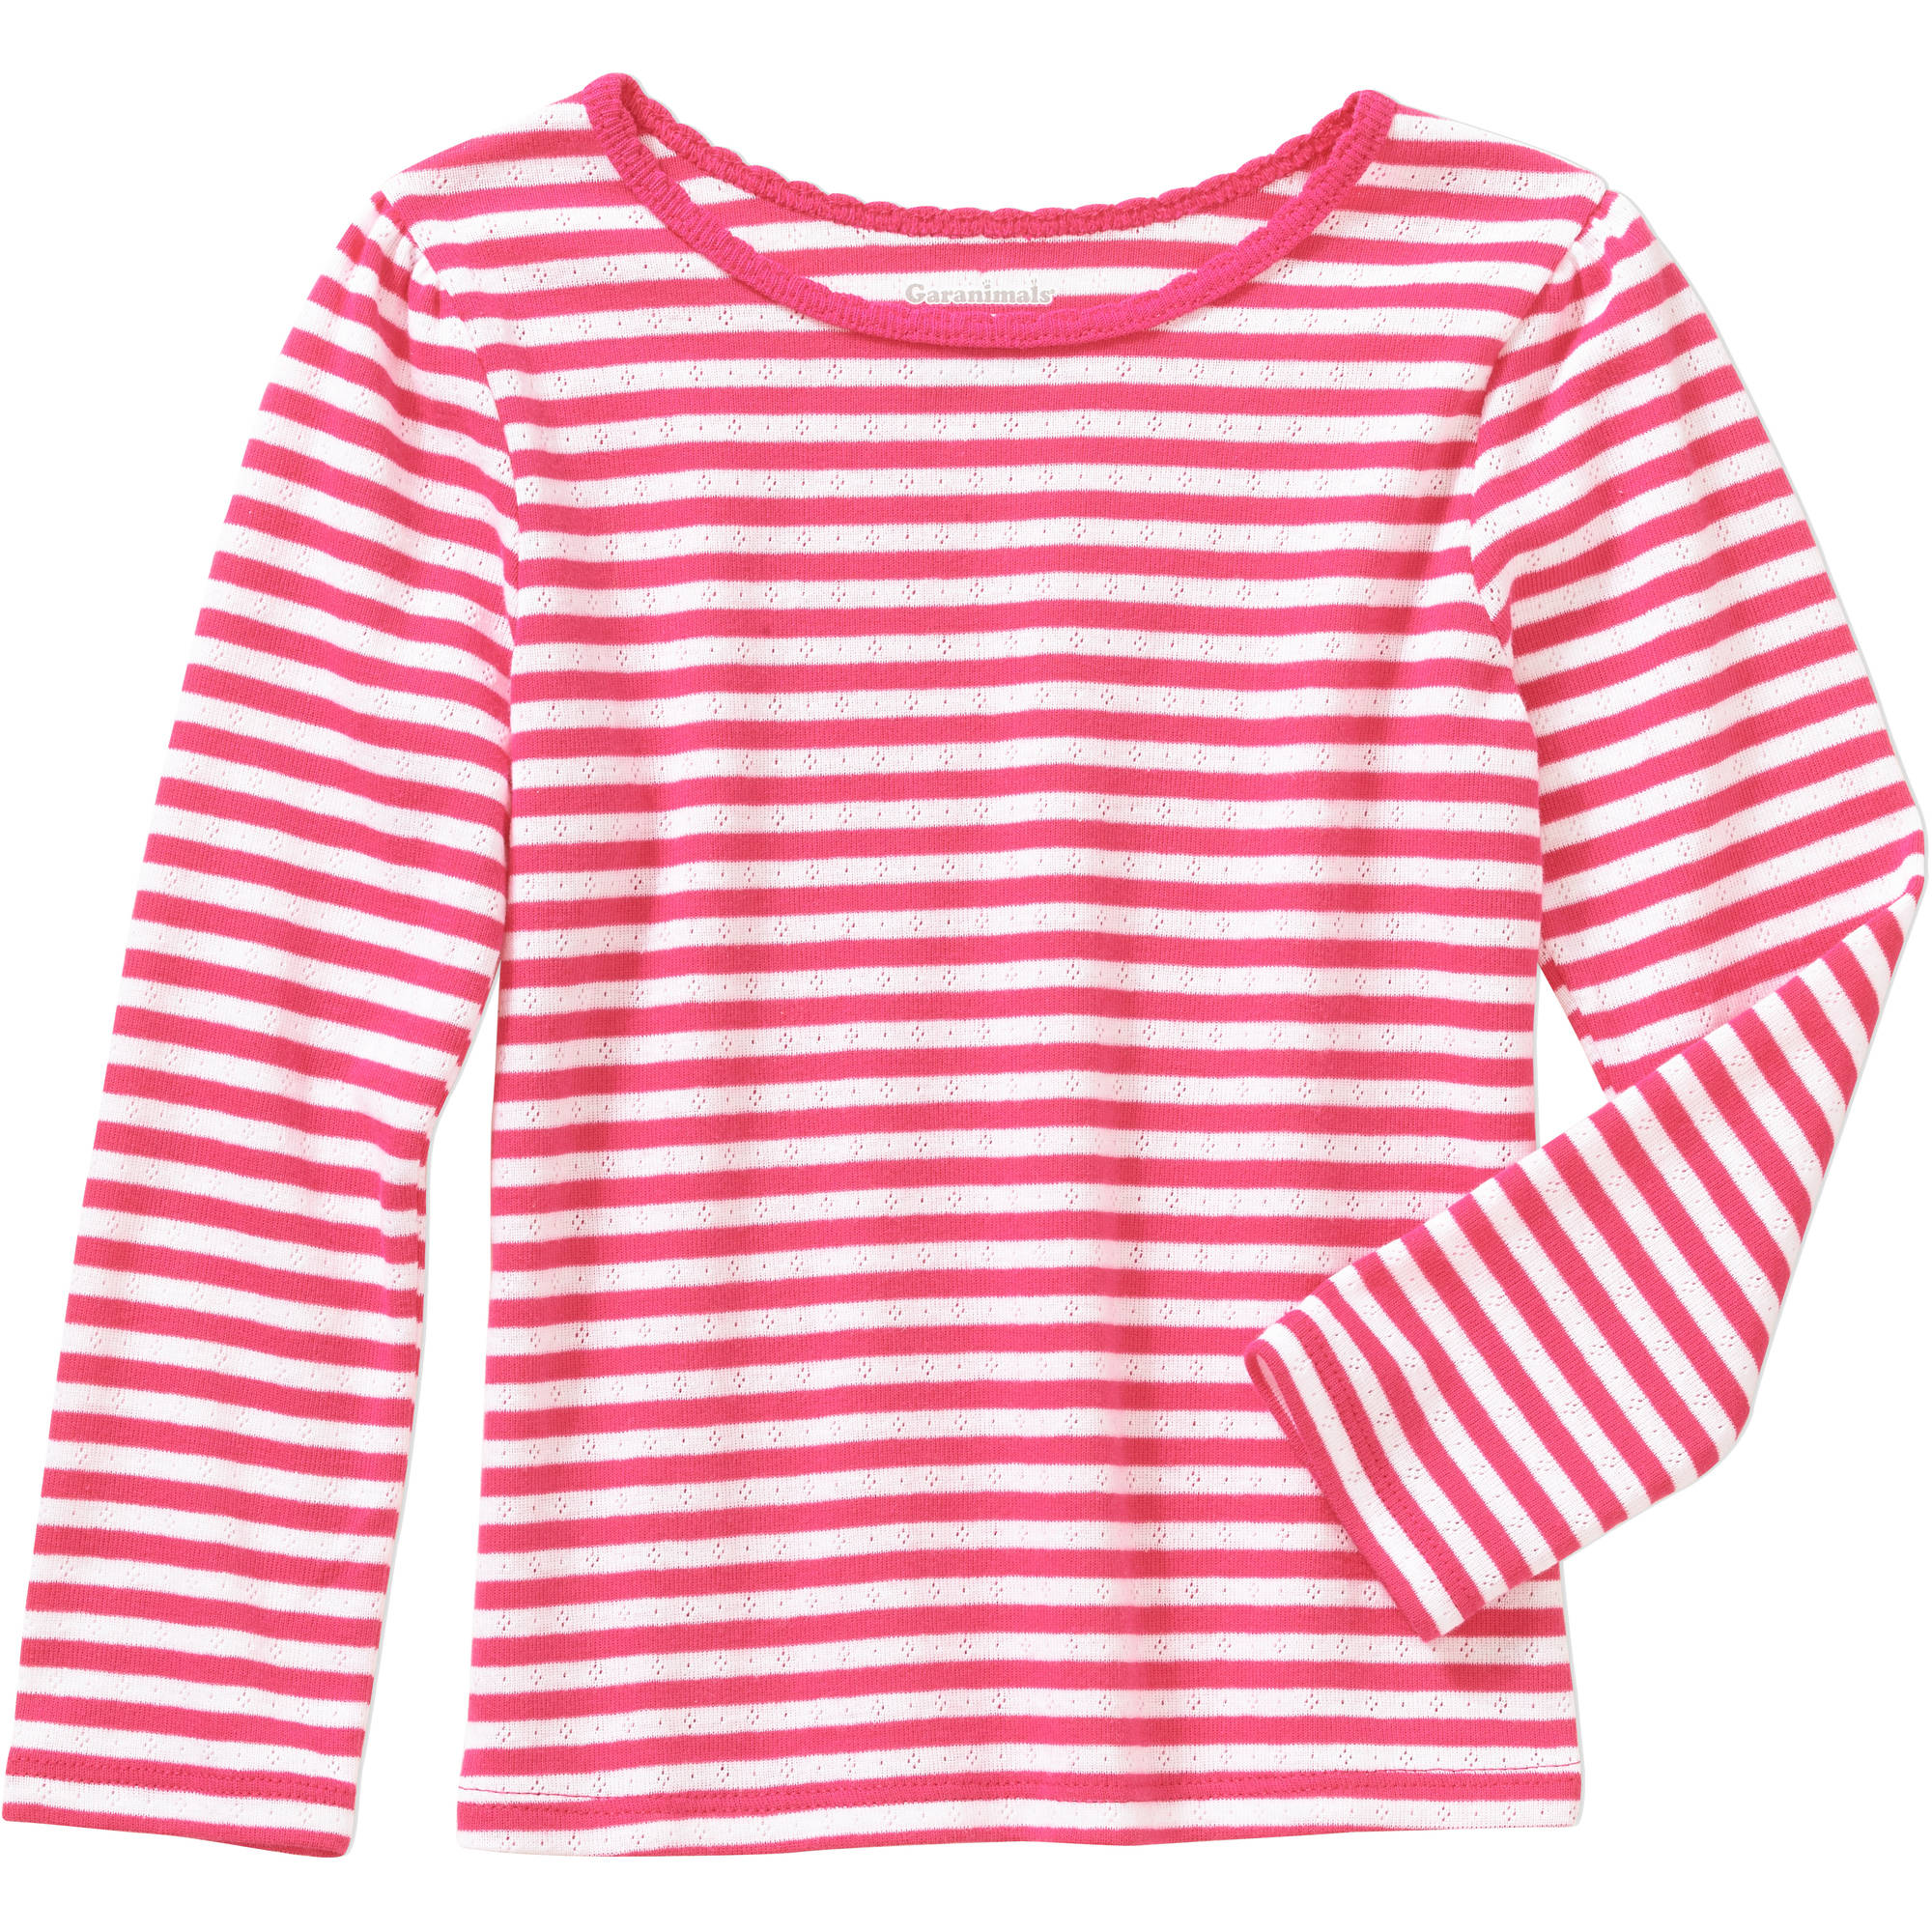 Garanimals Baby Toddler Girl Long Sleeve Pointelle Stripe Tee